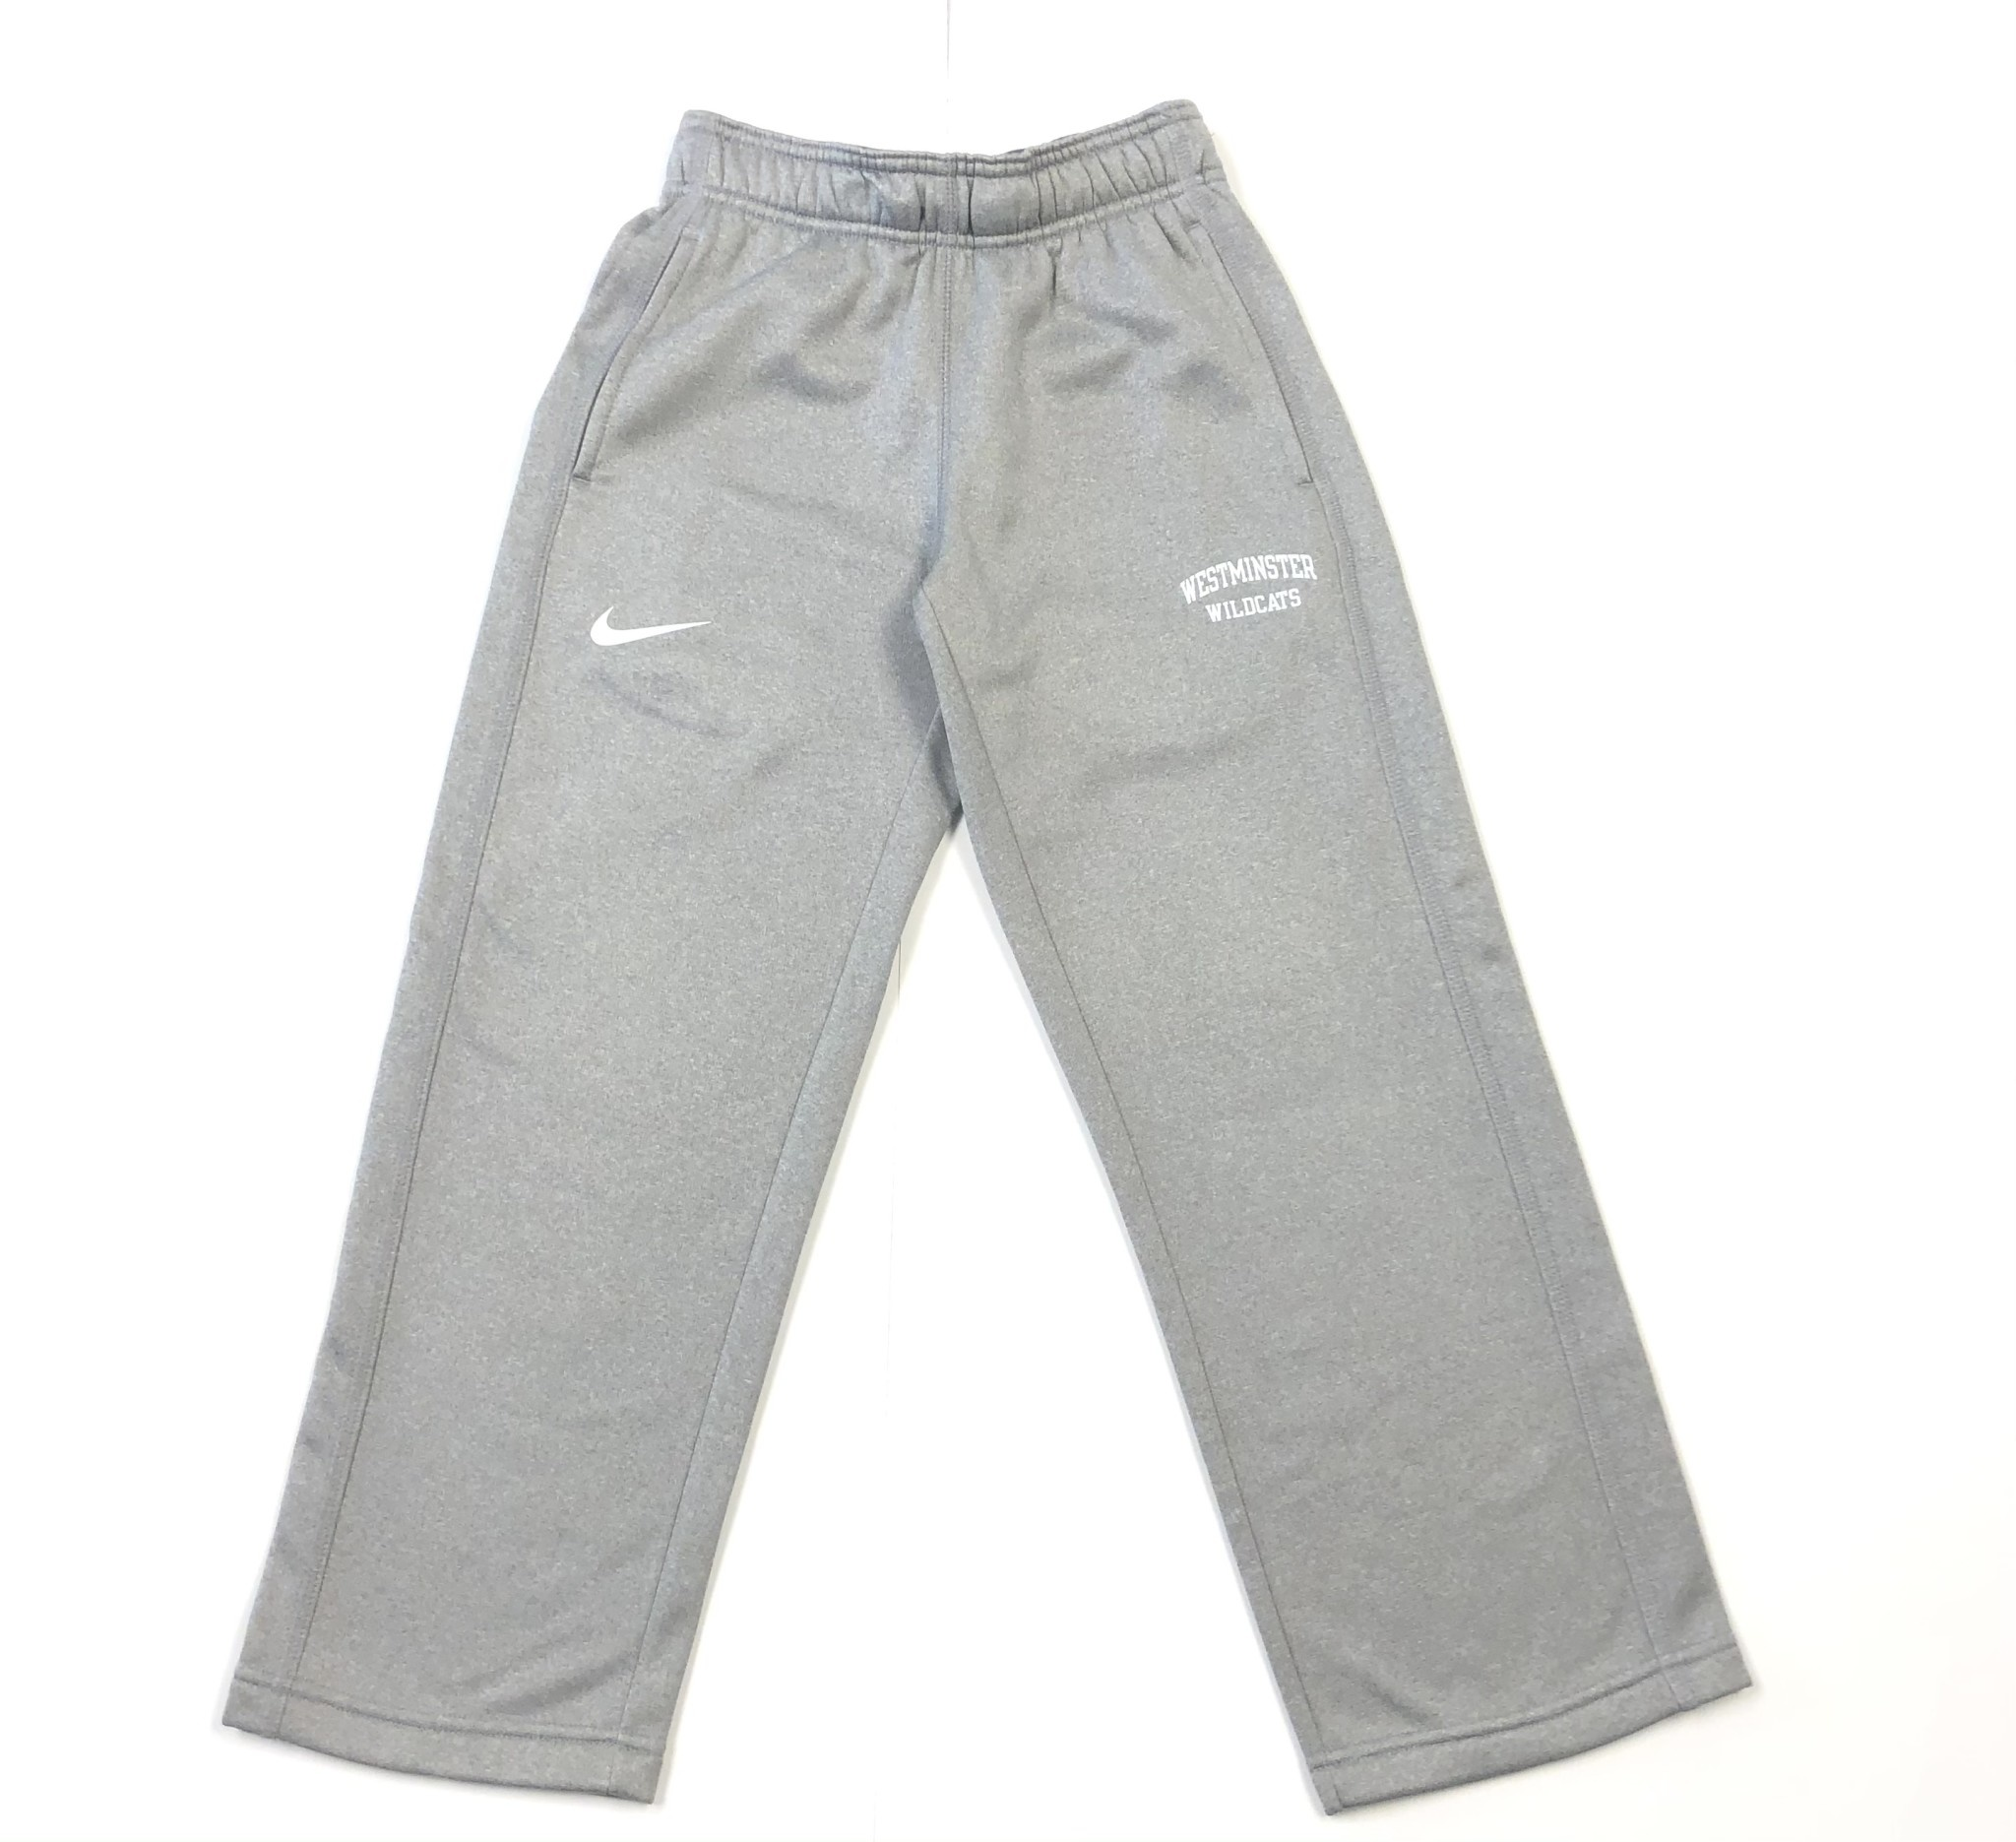 Nike Sweatpants: Nike KO pant - Dark Heather white Westminster Wildcats